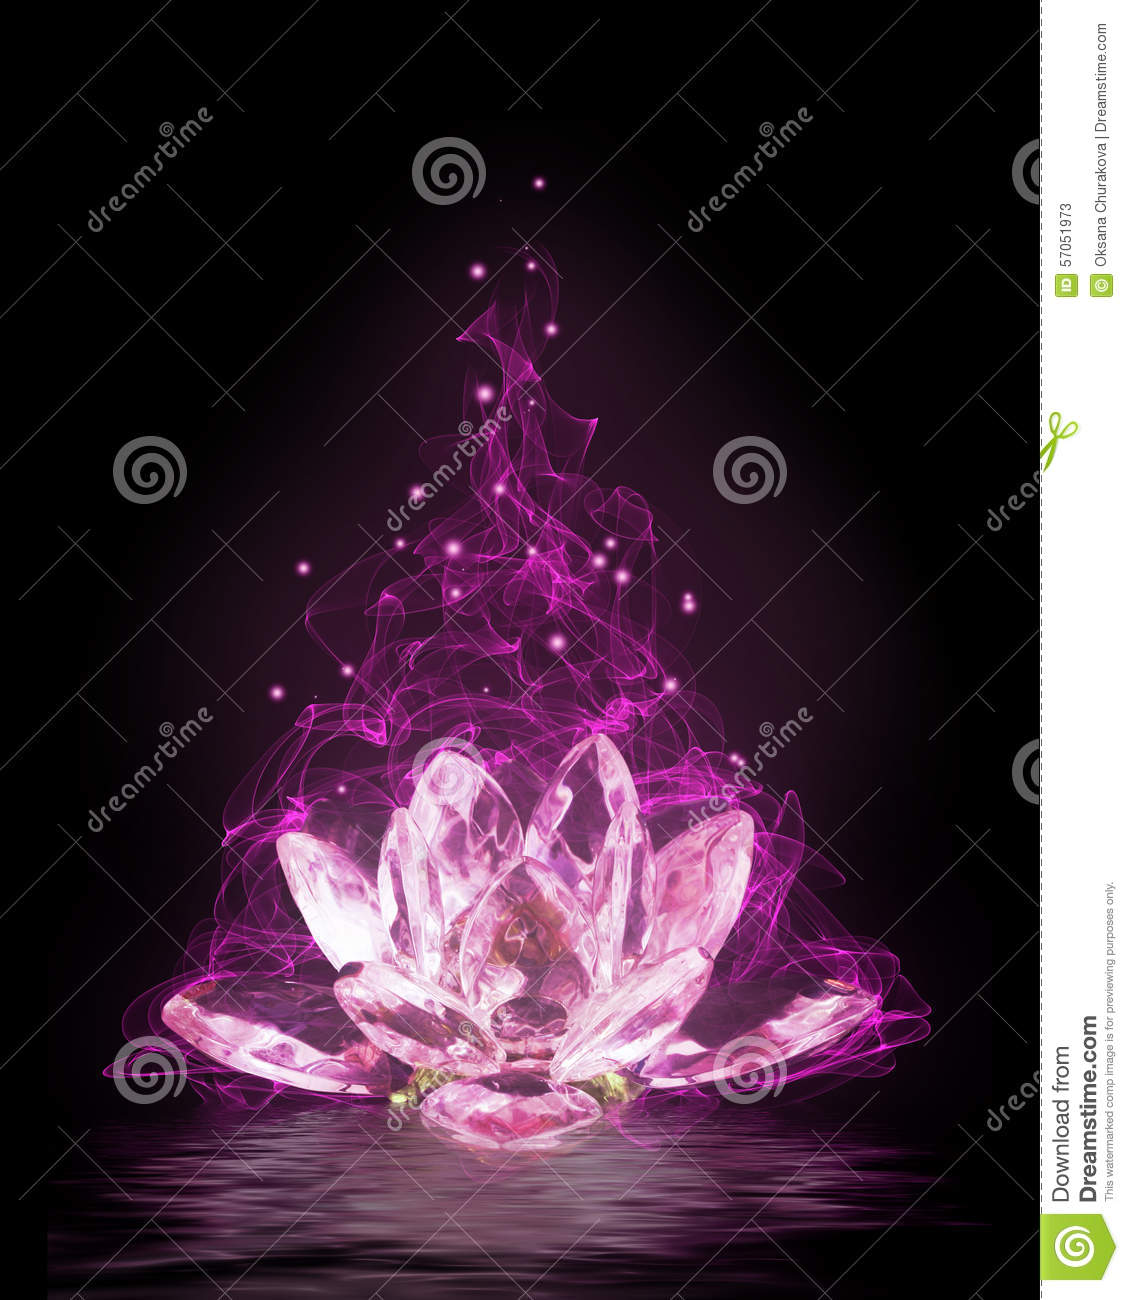 Magic Lotus Flower Stock Image Image Of Glass Mystery 57051973